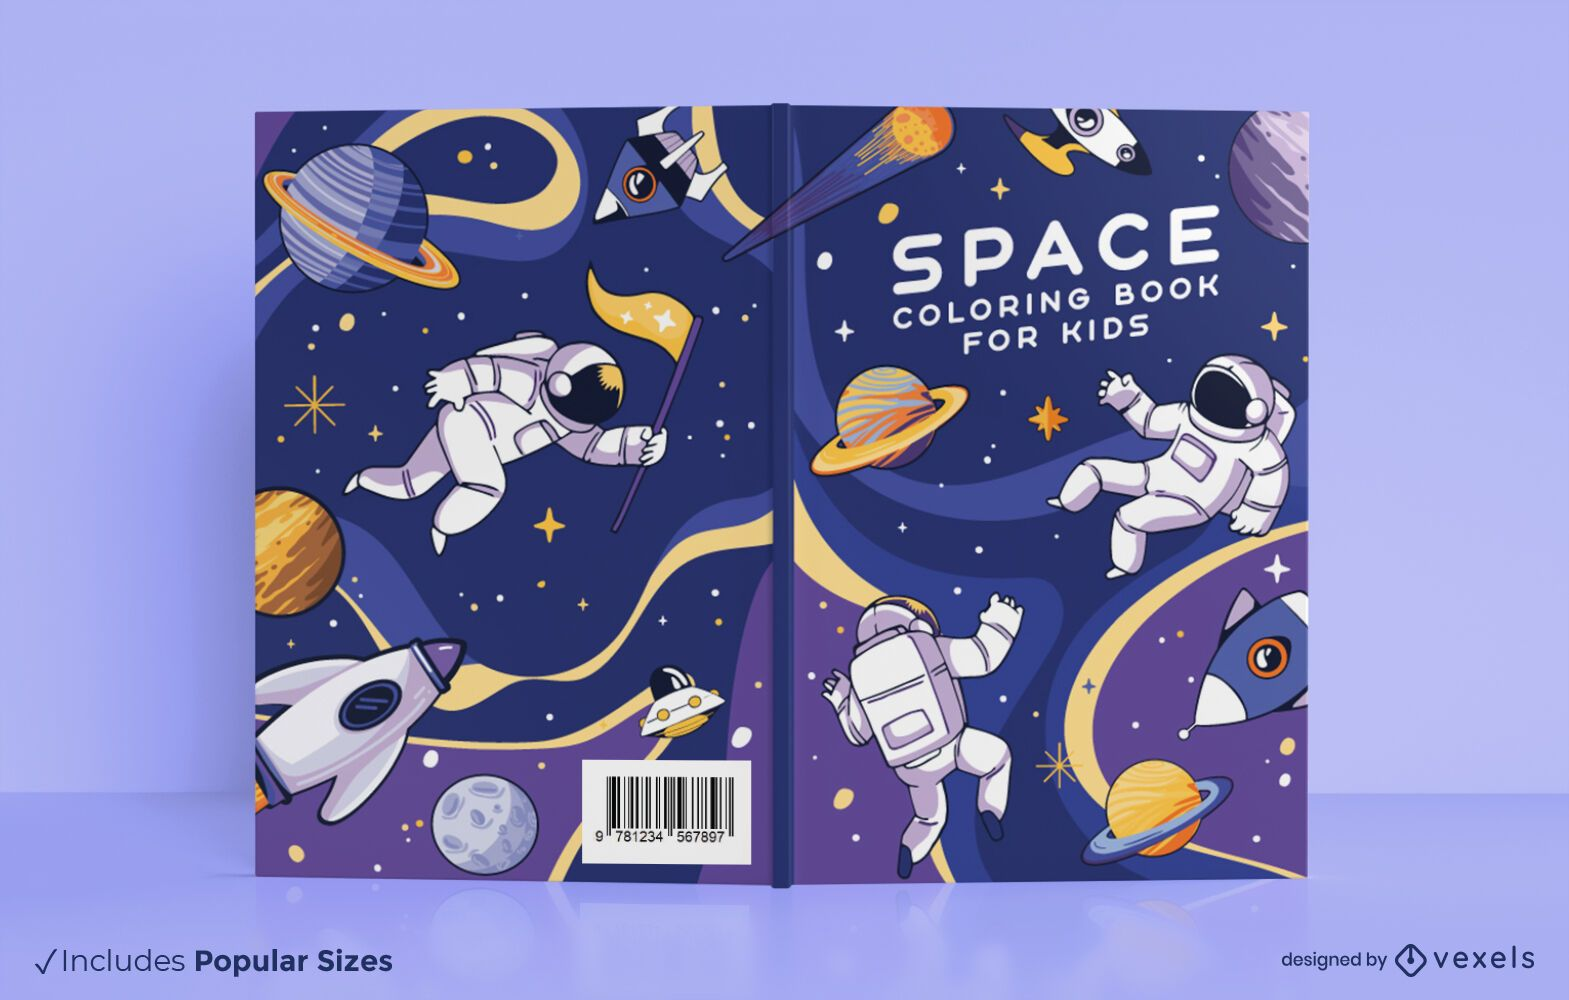 Space coloring book cover design